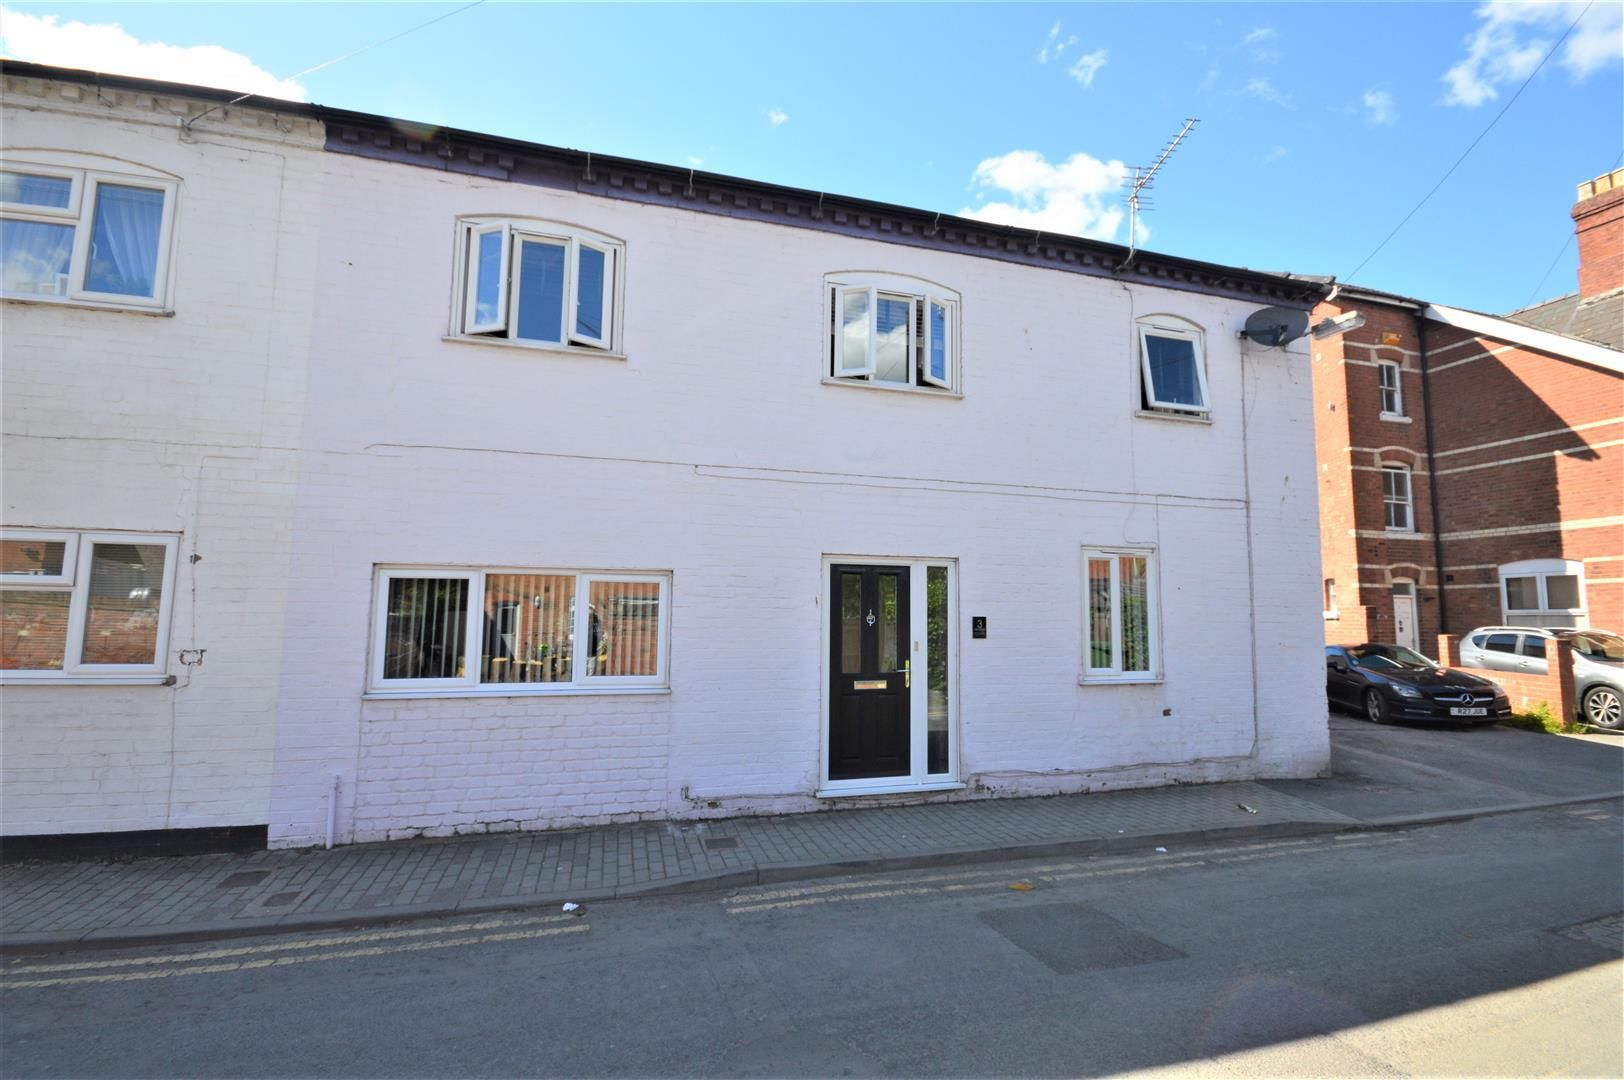 2 bed terraced for sale, HR4